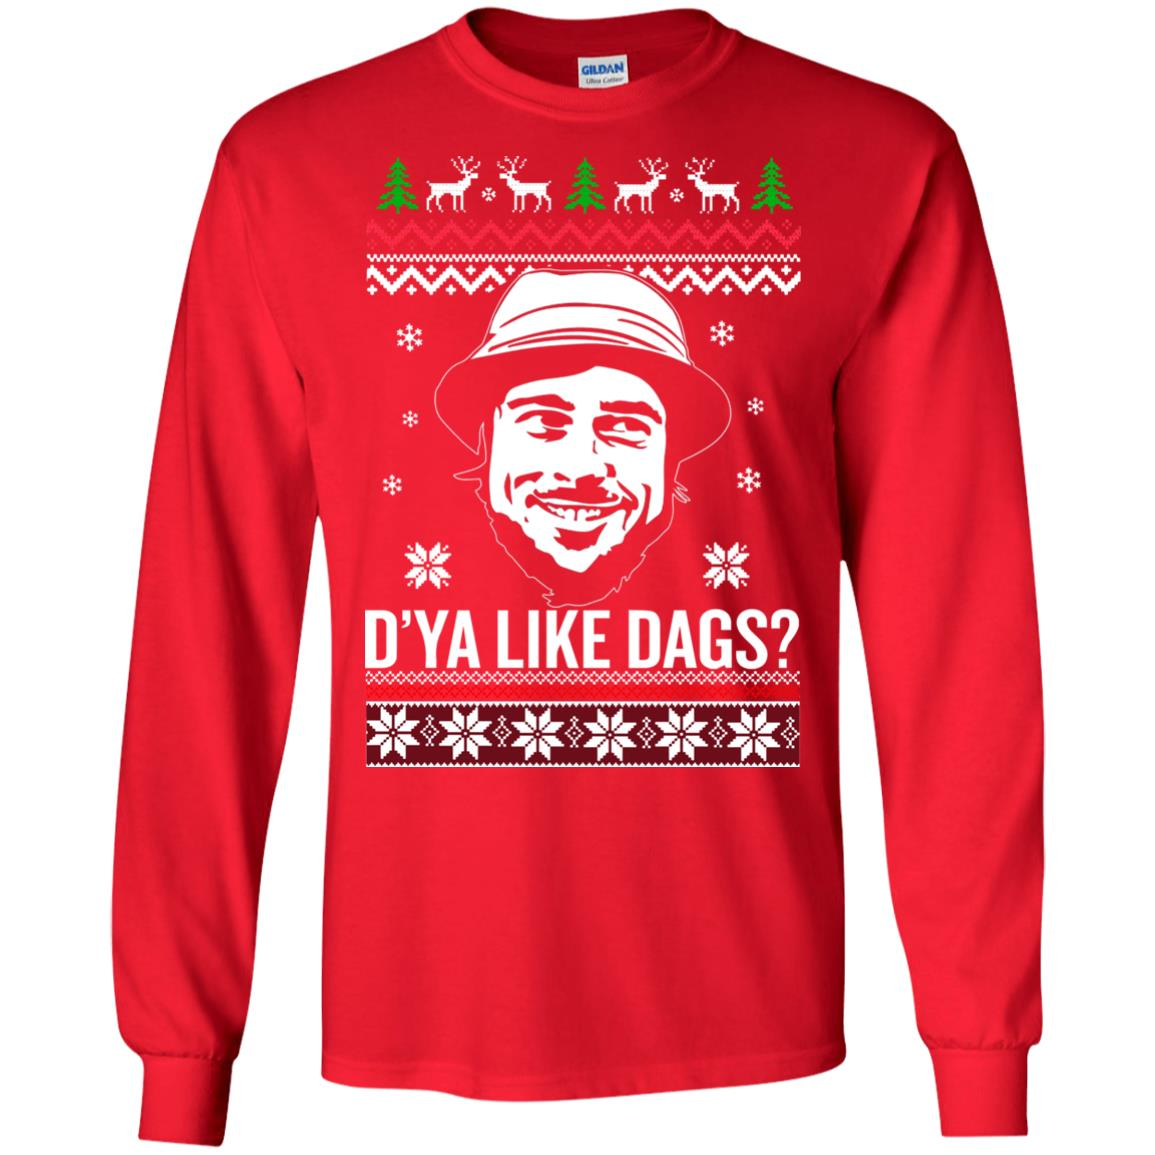 image 3152 - The Snatch D'ya like Dags Ugly Sweater, Christmas Sweatshirt